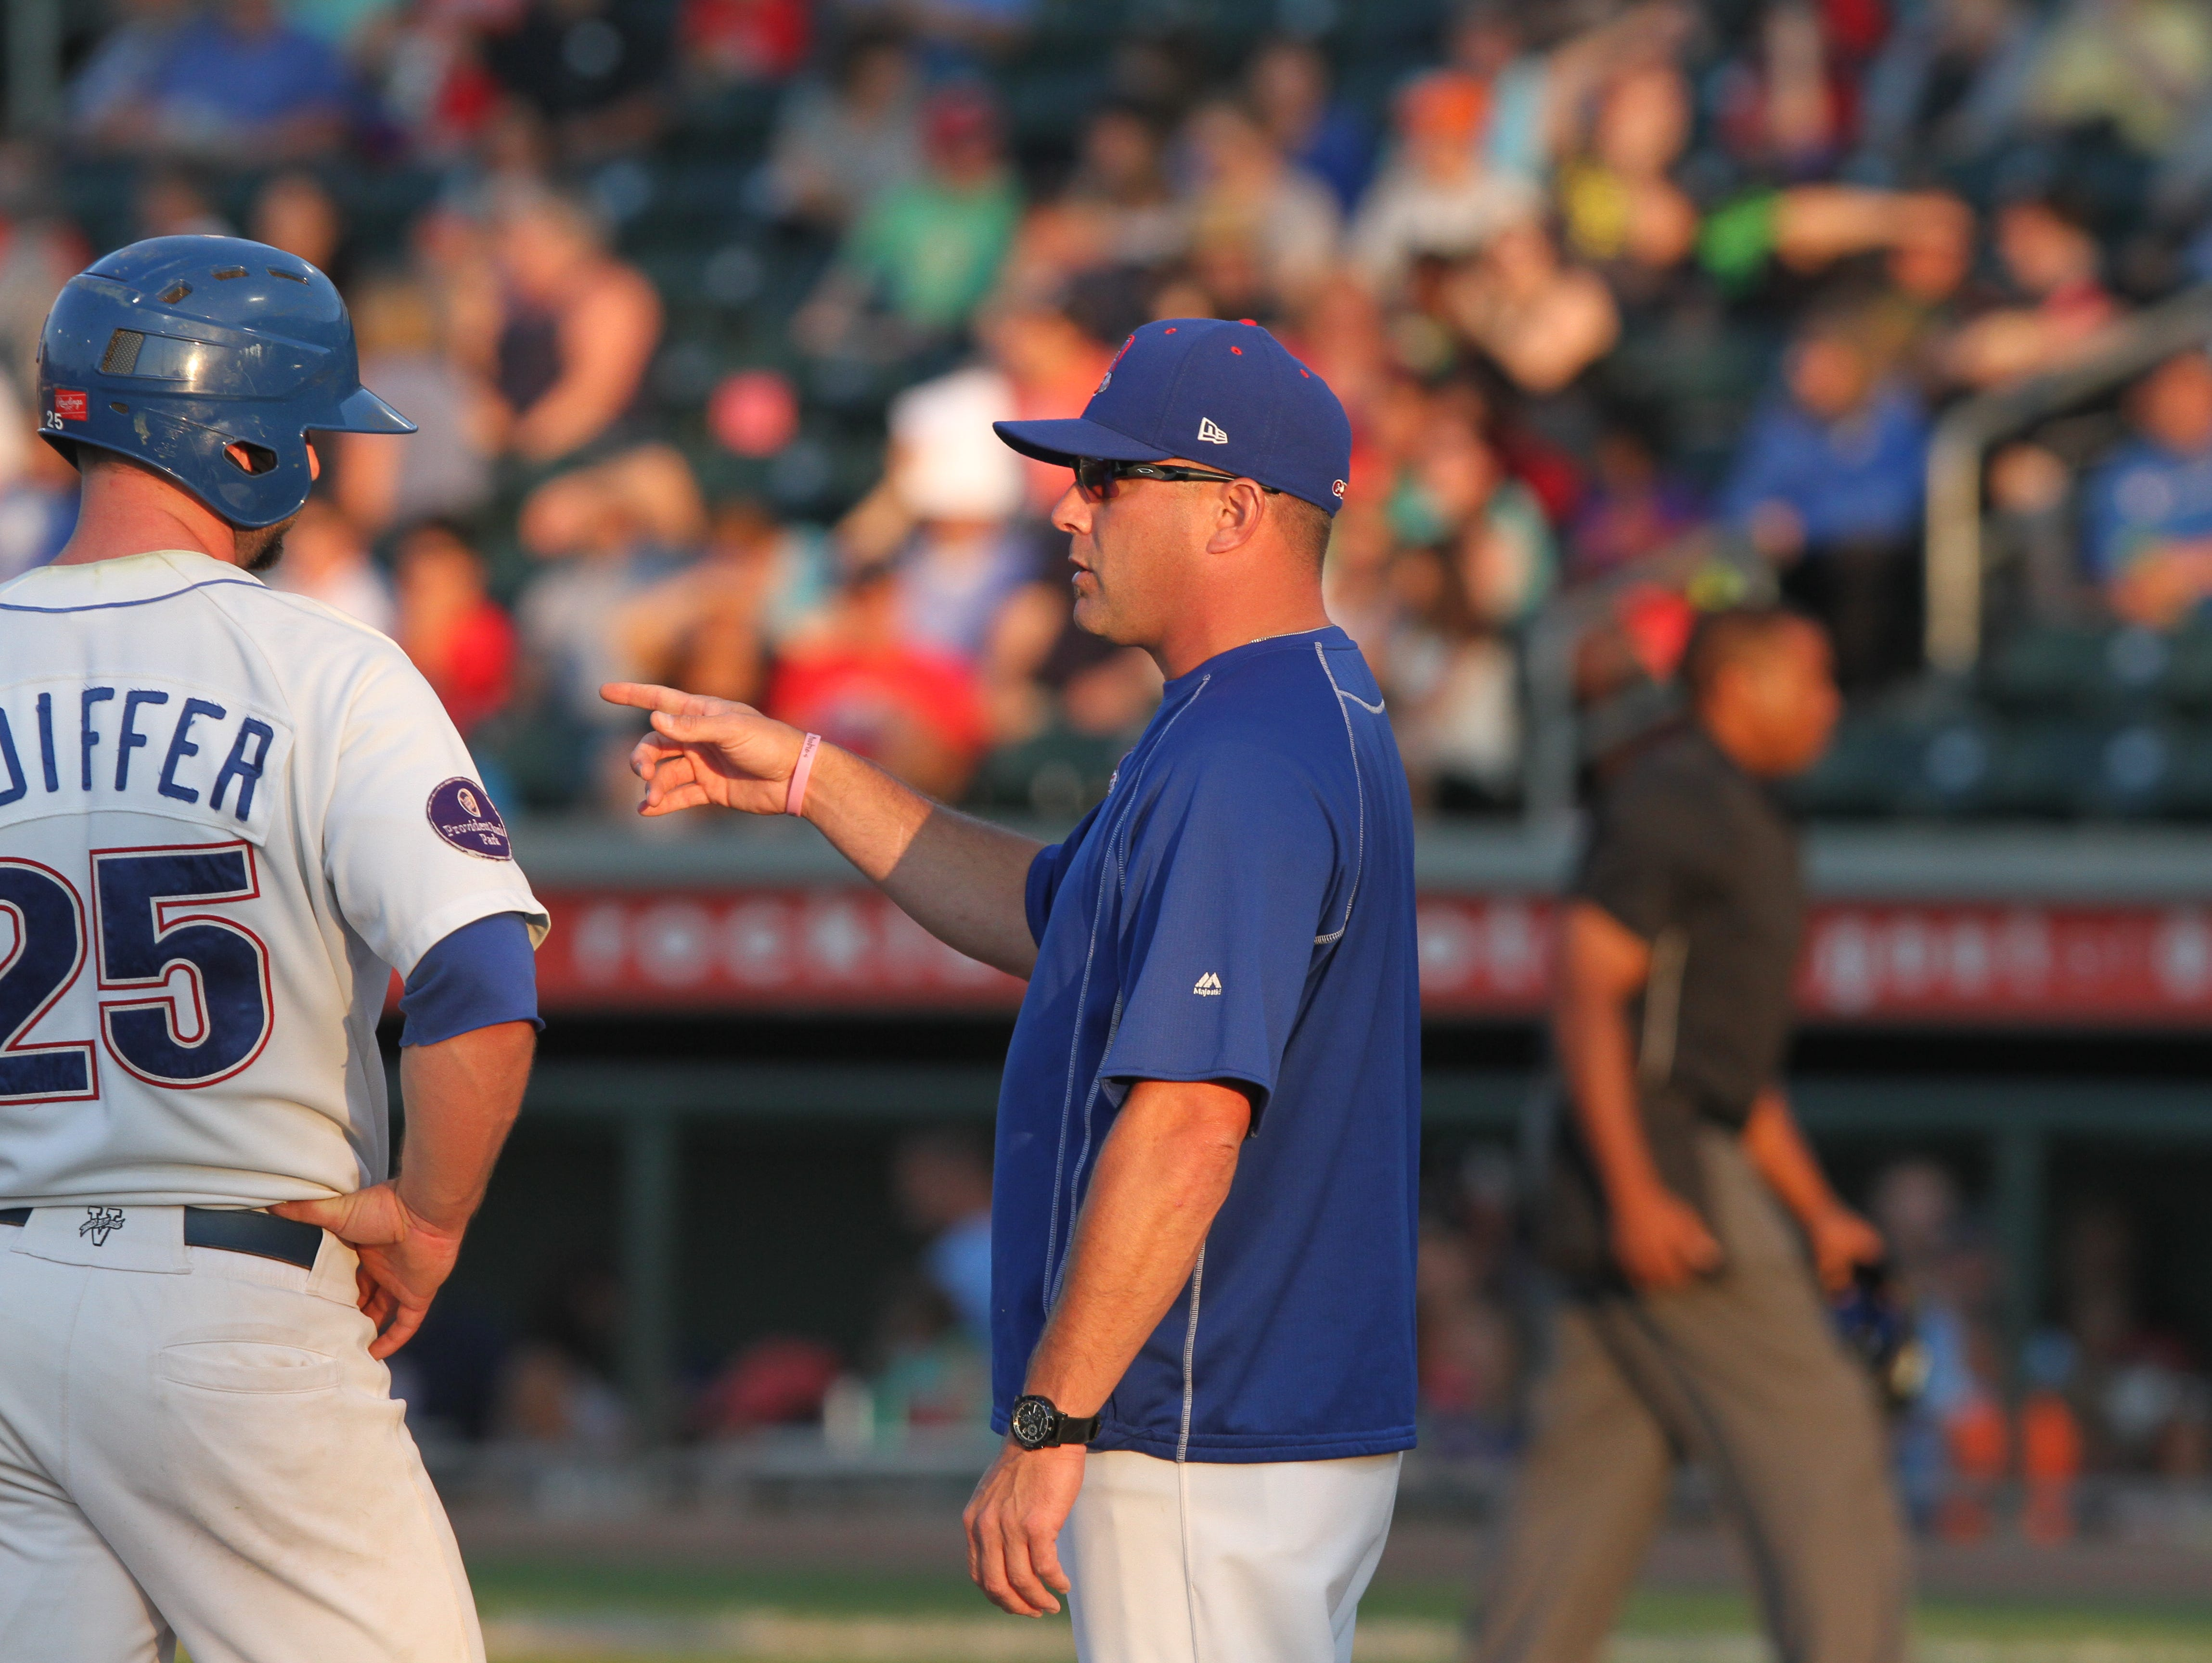 Rockland Boulders manager Jamie Keefe talks to catcher Marcus Nidiffer during a game against the New Jersey Jackals at Provident Bank Park July 16, 2015.